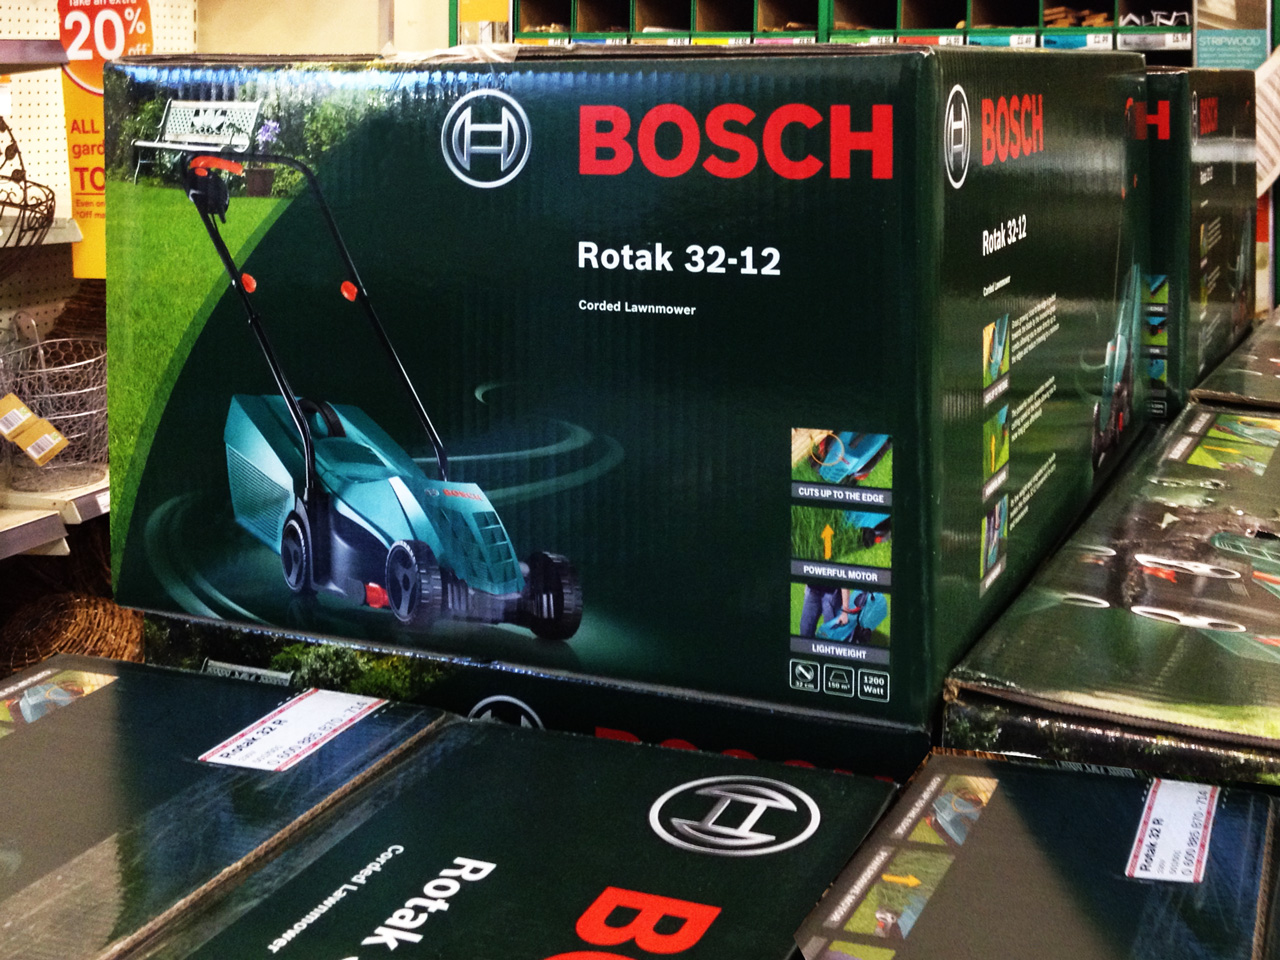 BOSCH-MOWER-PACKAGING-INSTORE